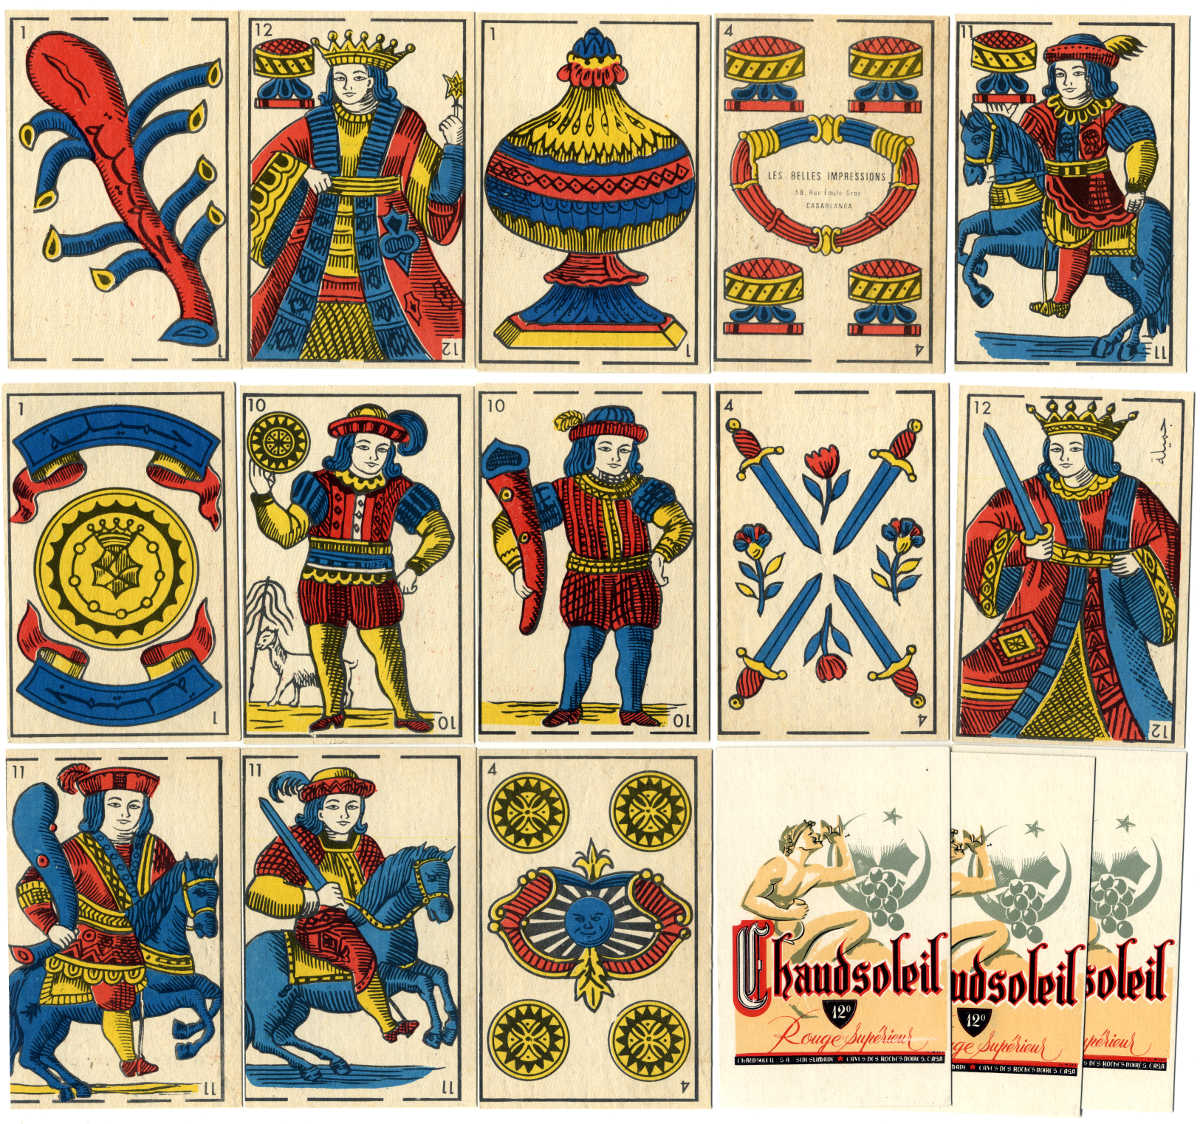 Spanish-suited playing-cards with advertising for Chaudsoleil red wine, manufactured by Imprimerie Belles Impressions, S.A., Casablanca, Morocco